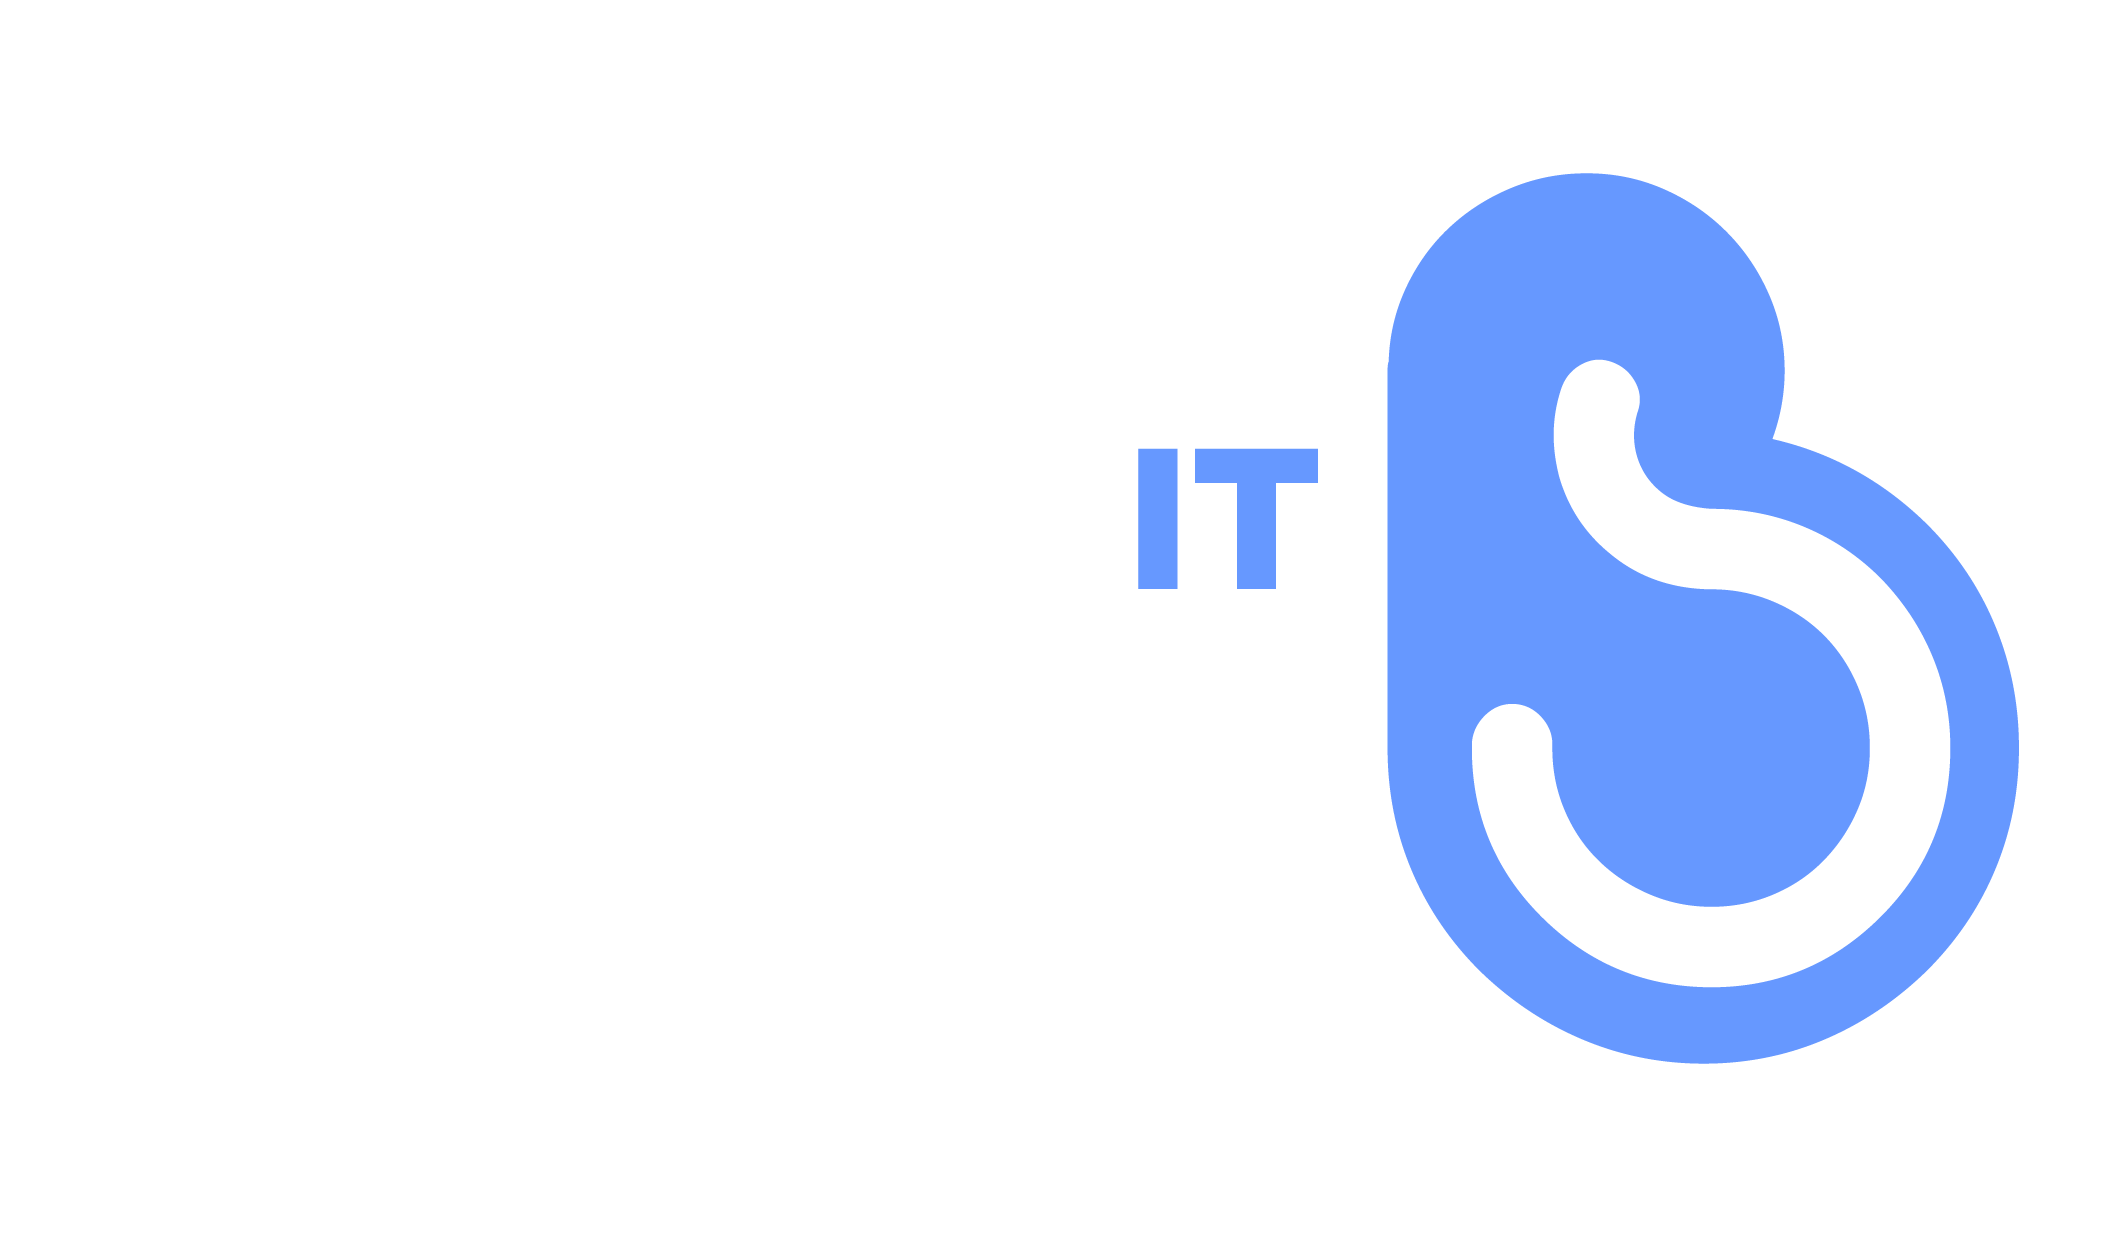 Bizit Solutions Ltd